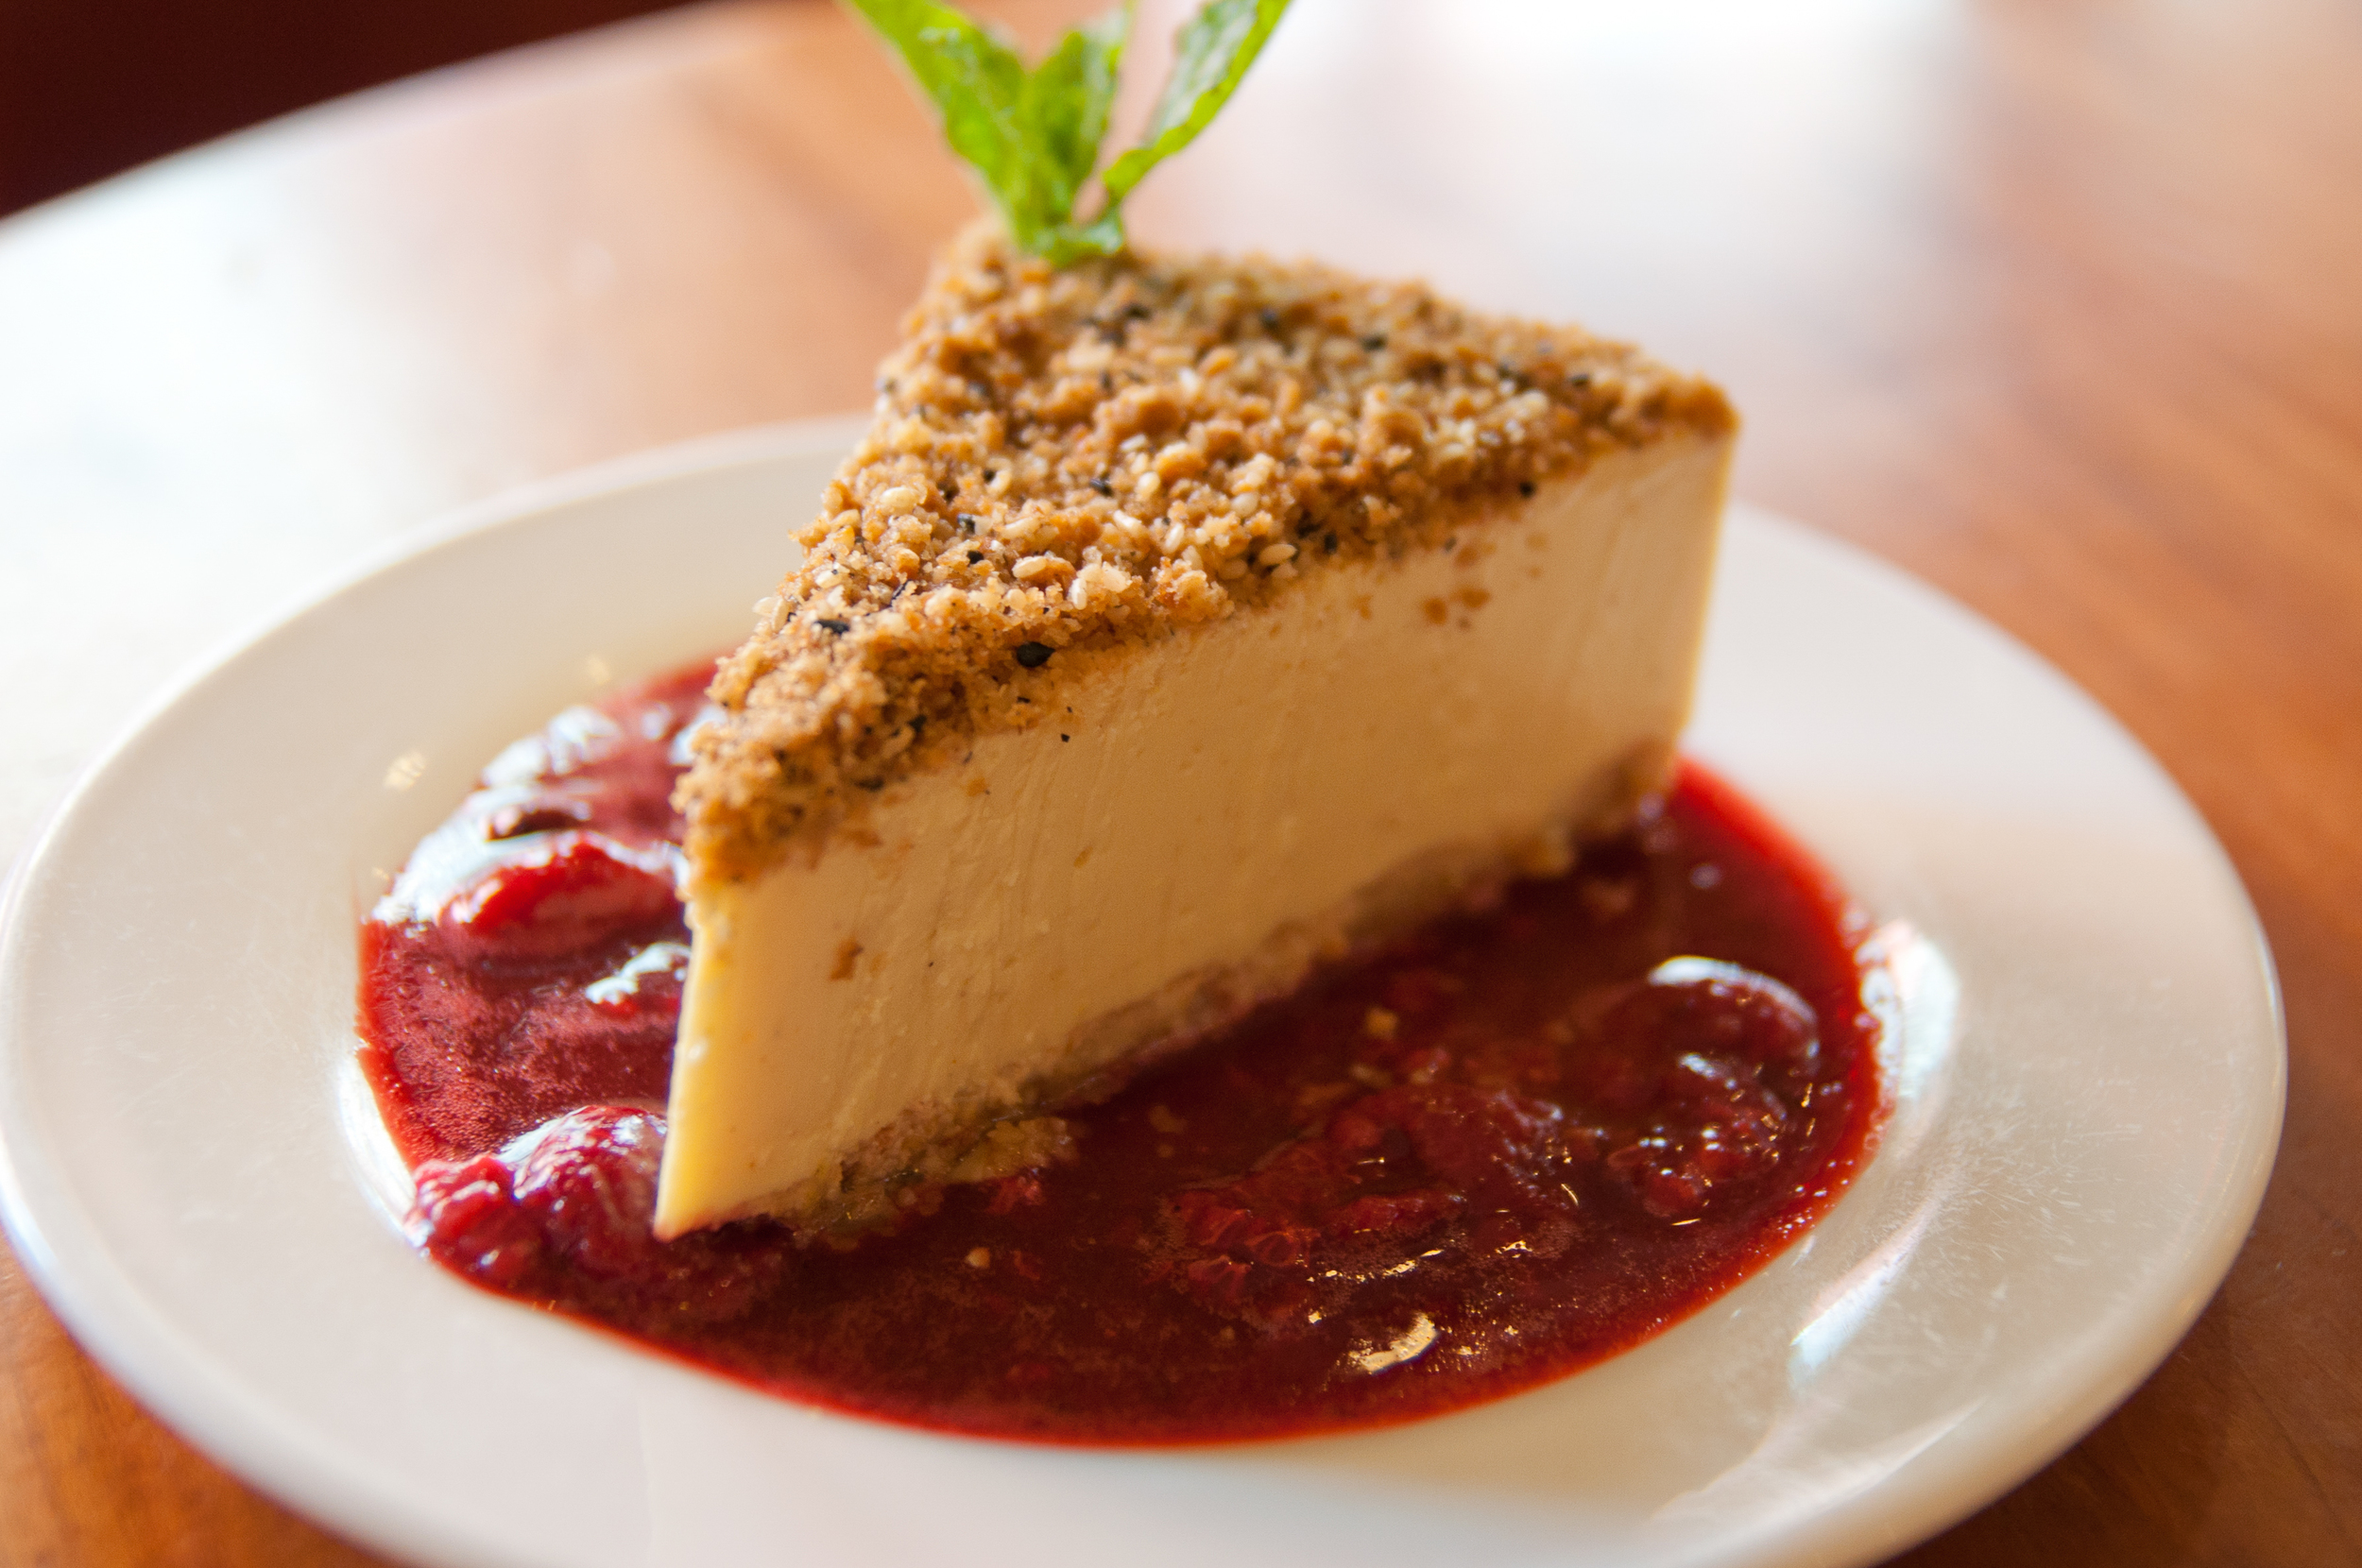 editorial-commercial-photography-long-island-ny-nyc-restaurant-food-cheesecake-photography-digital-Edit.jpg